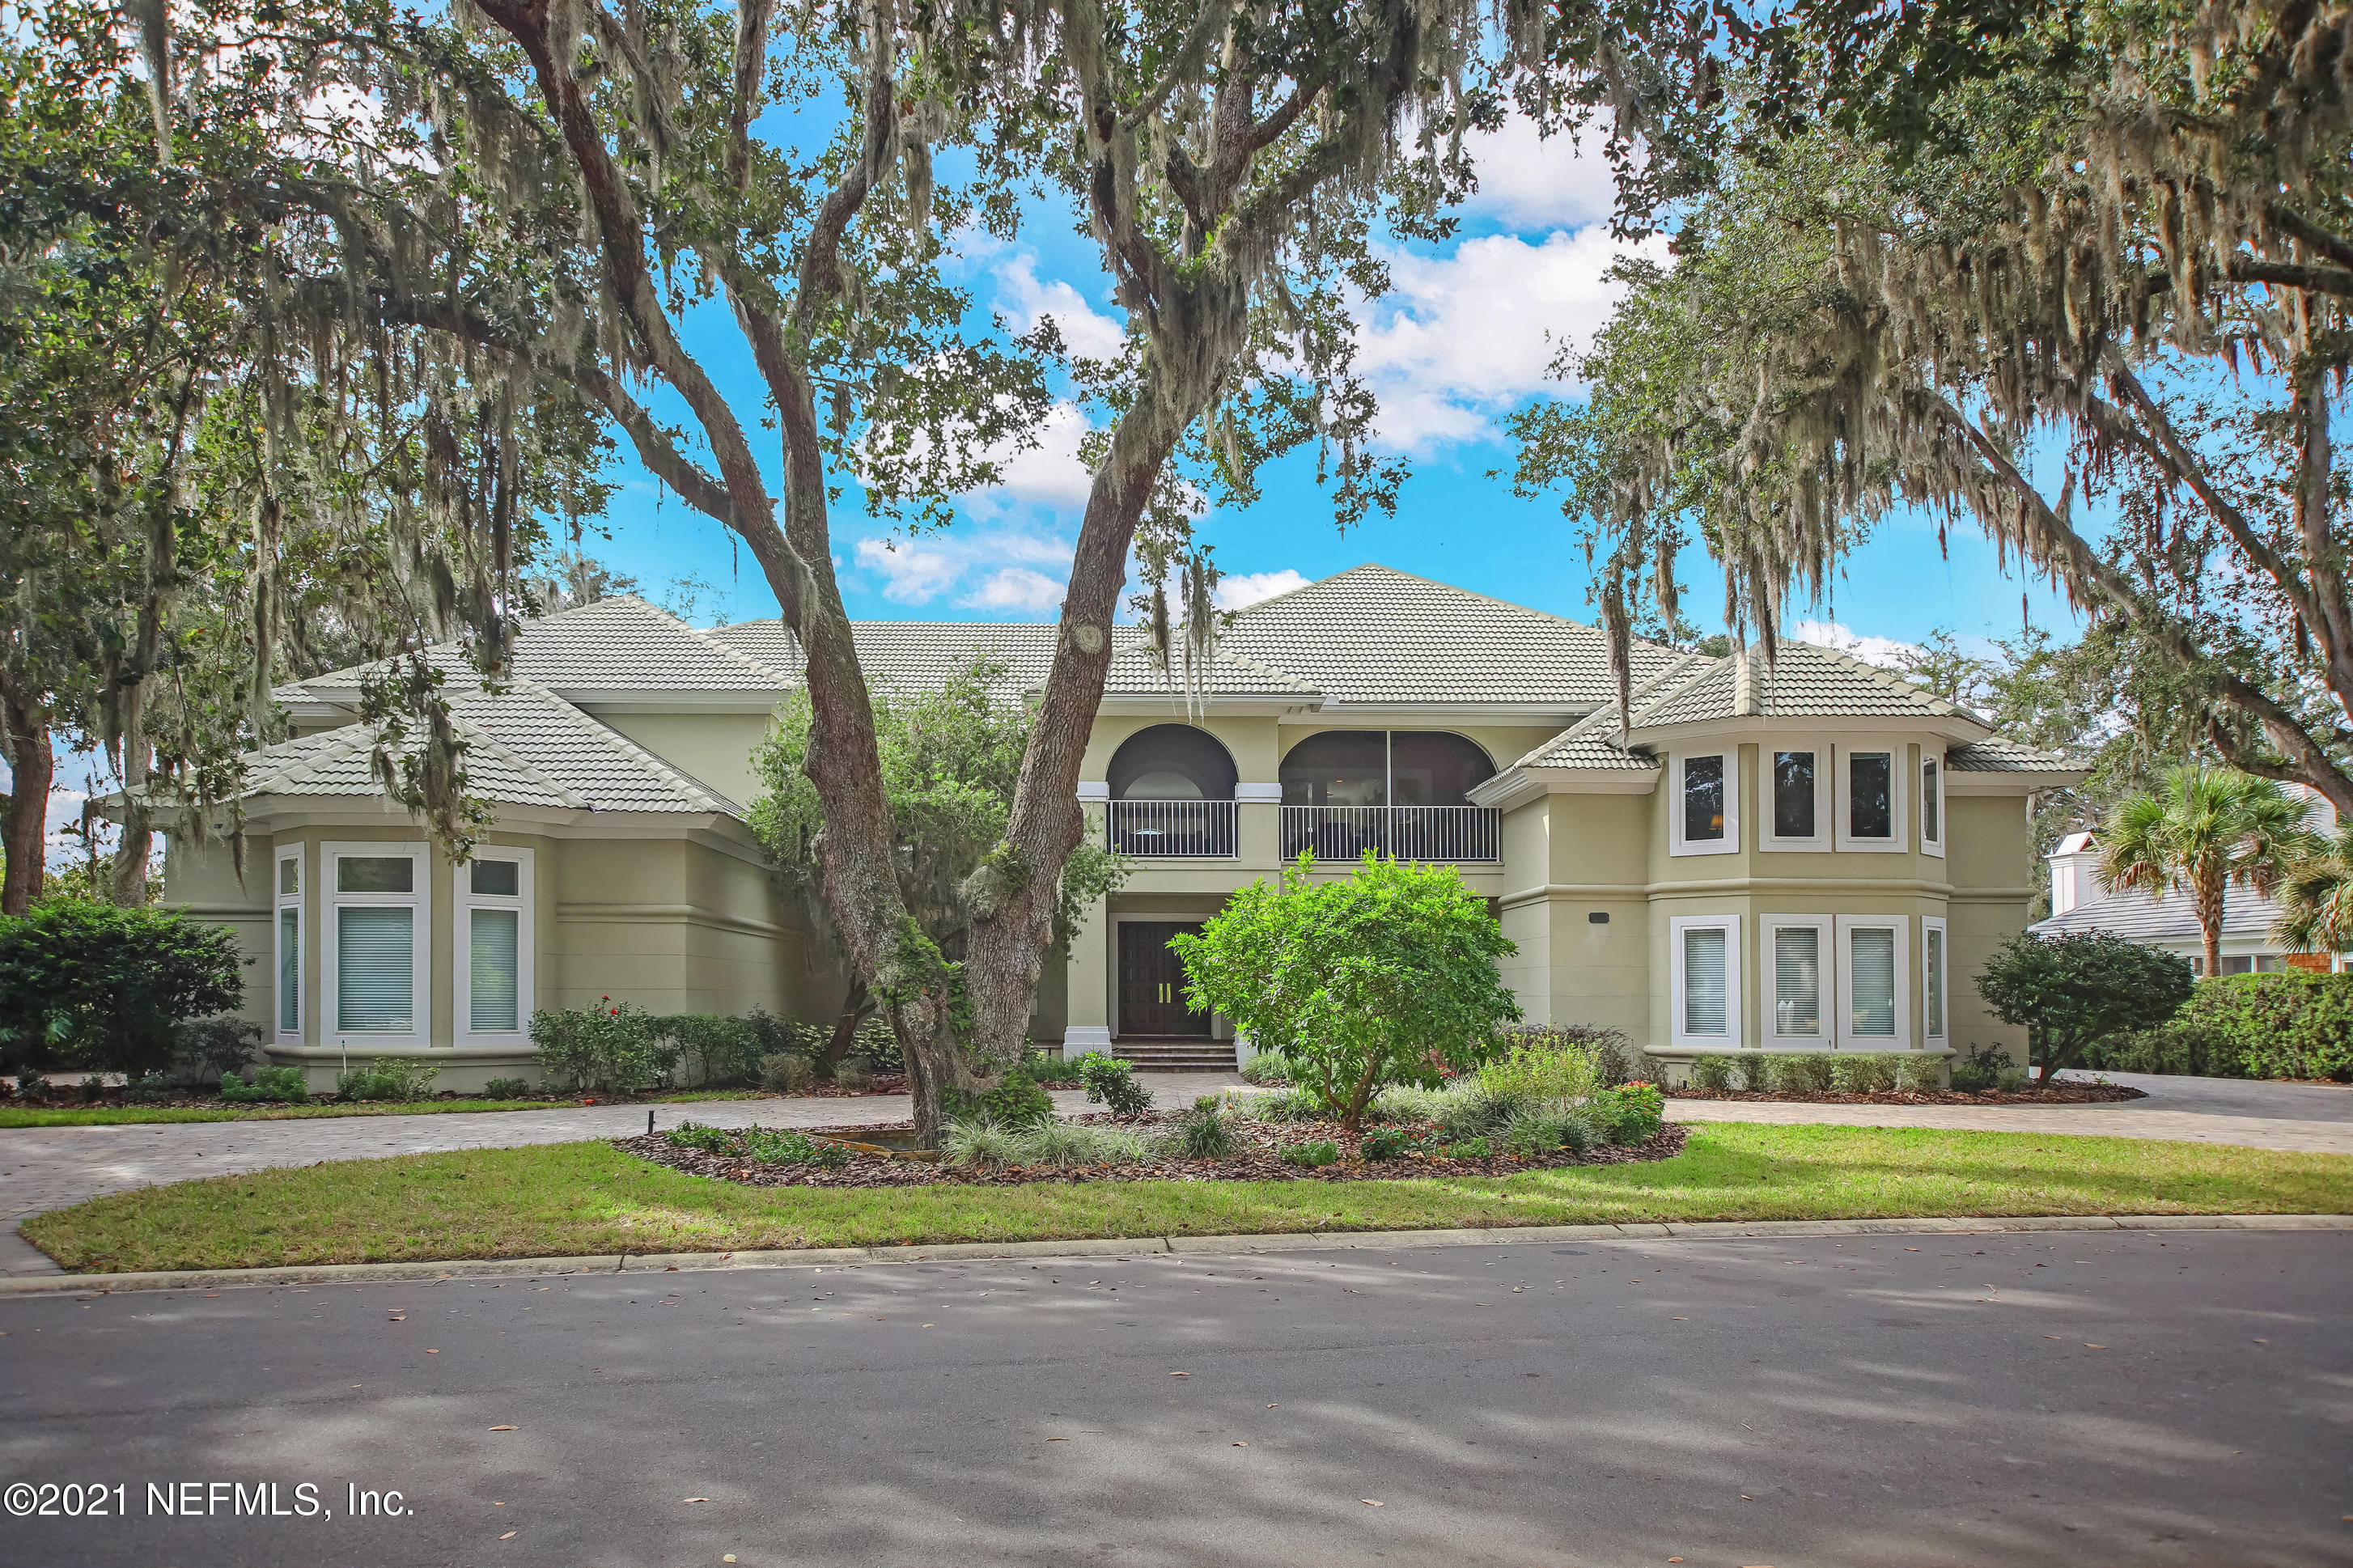 189 Admirals Way Ponte Vedra Beach, Fl 32082